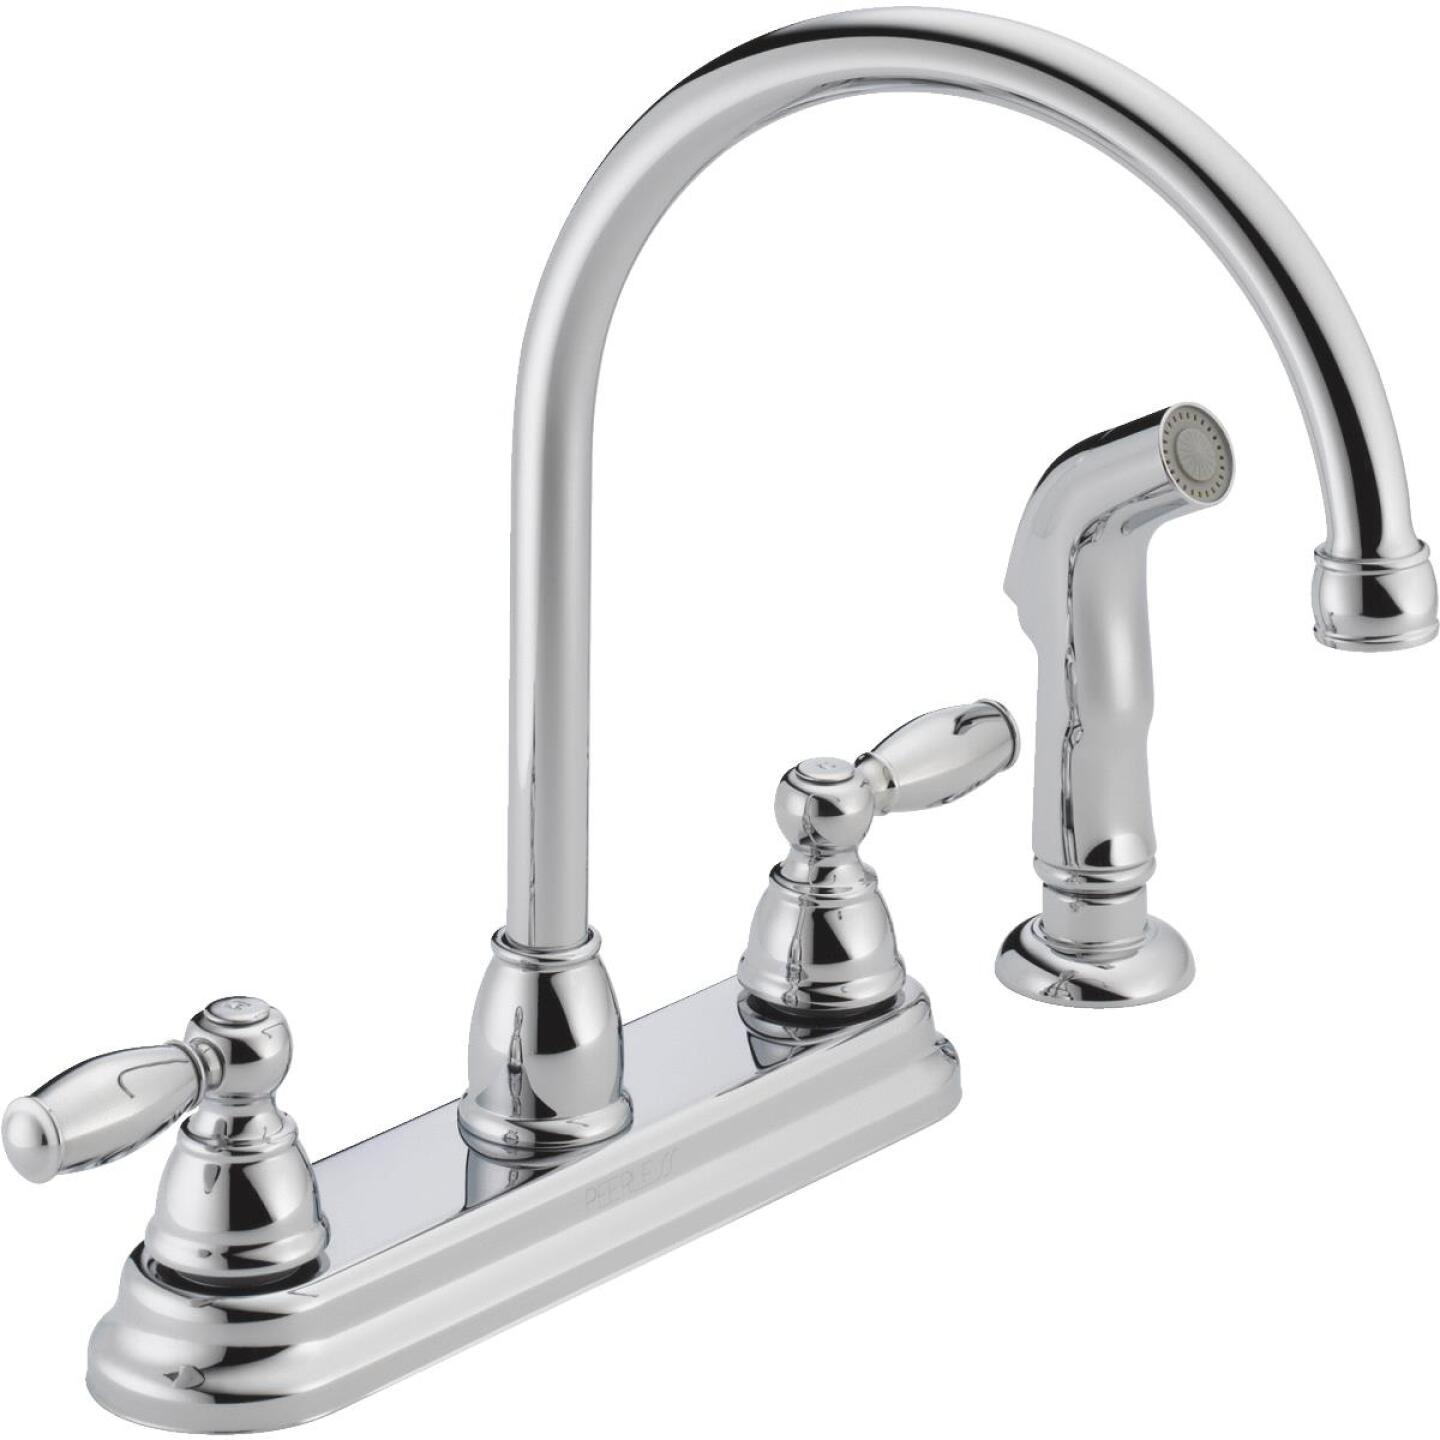 Peerless Dual Handle Lever Kitchen Faucet with Side Spray, Chrome Image 1